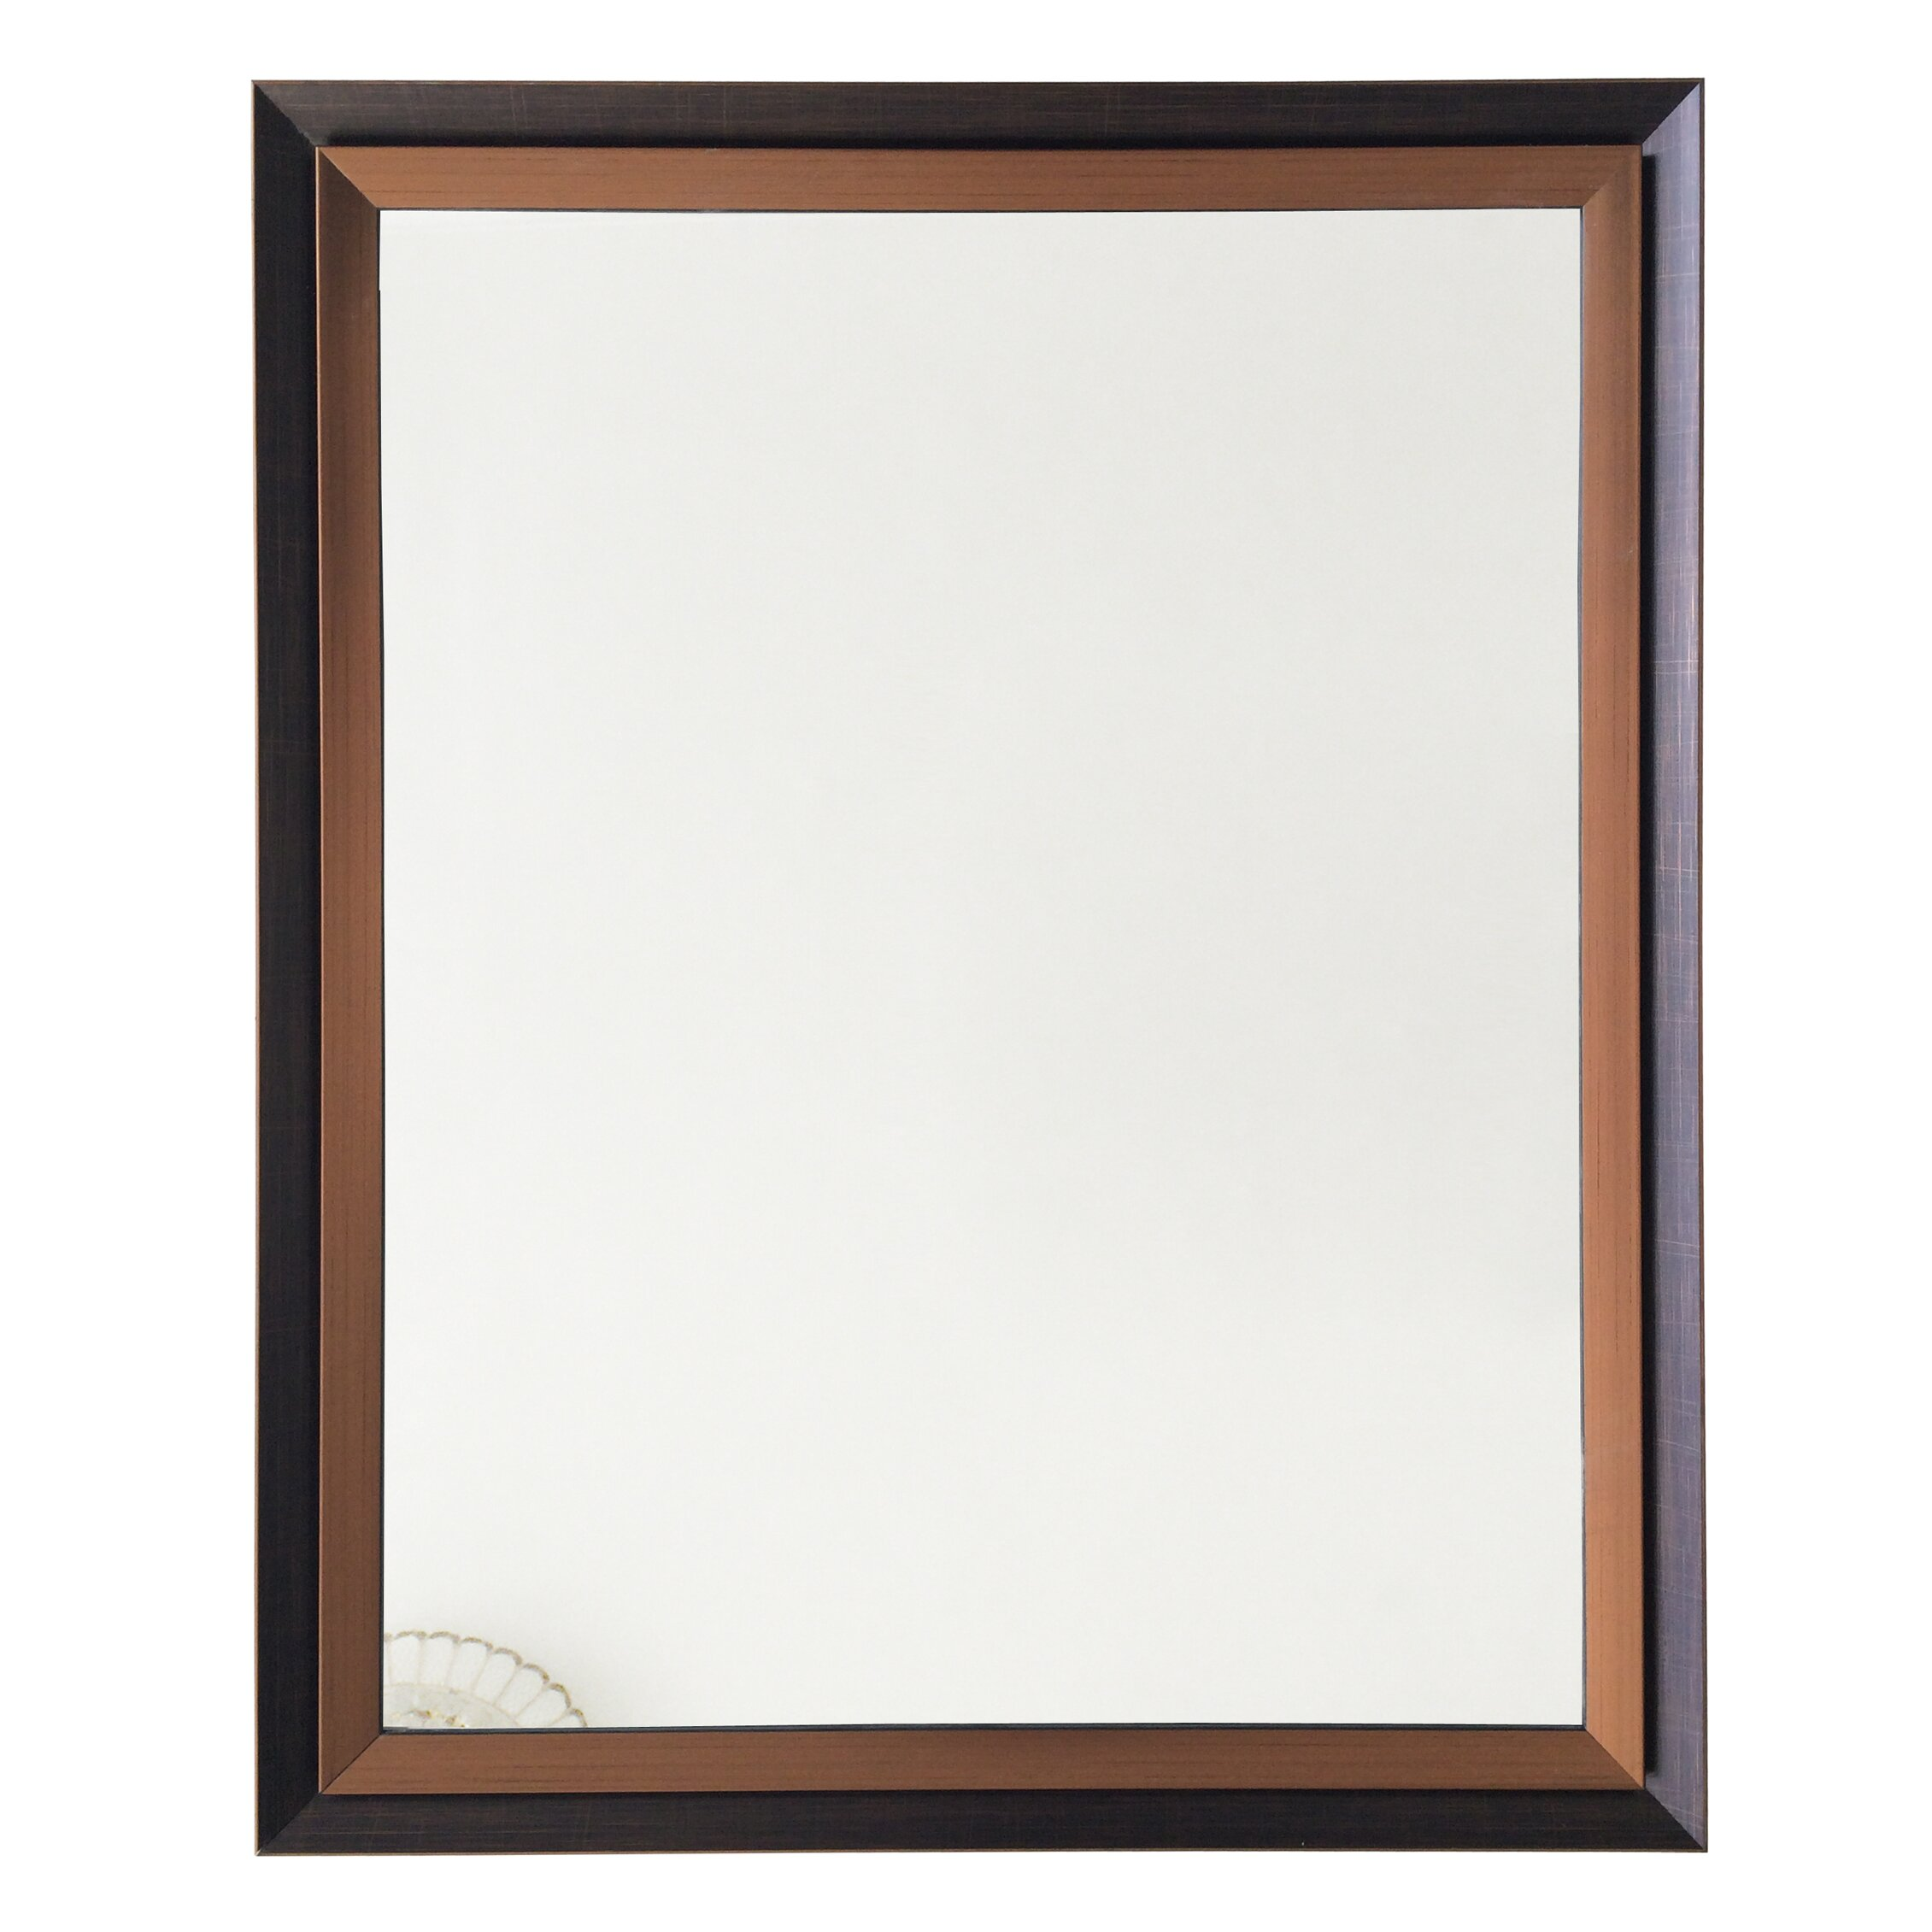 Kingwinhomedecor framed wall mirror reviews wayfair for Mirror decor